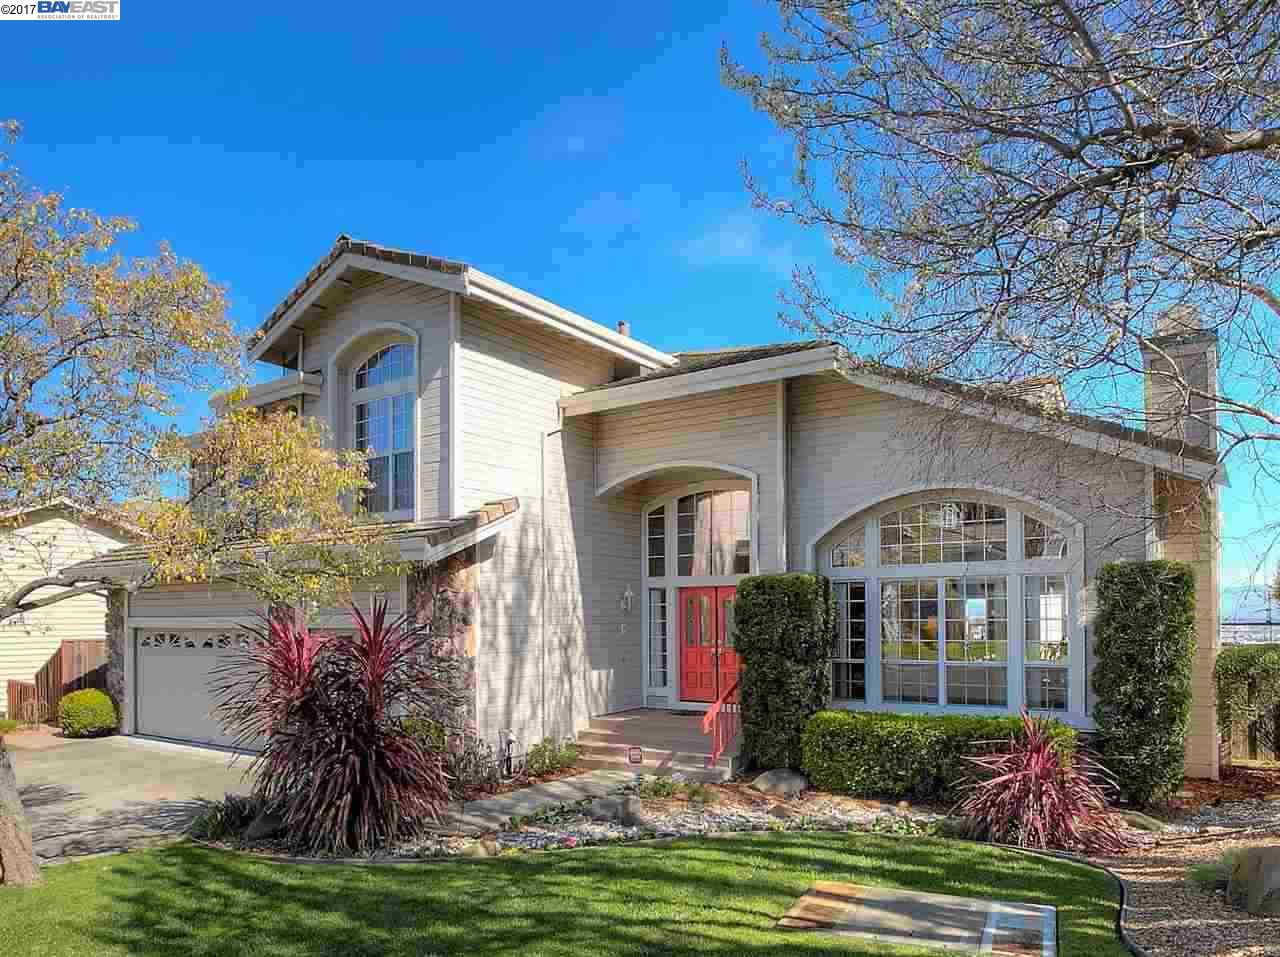 Single Family Home for Sale at 11367 VILLAGE VIEW COURT Dublin, California 94568 United States